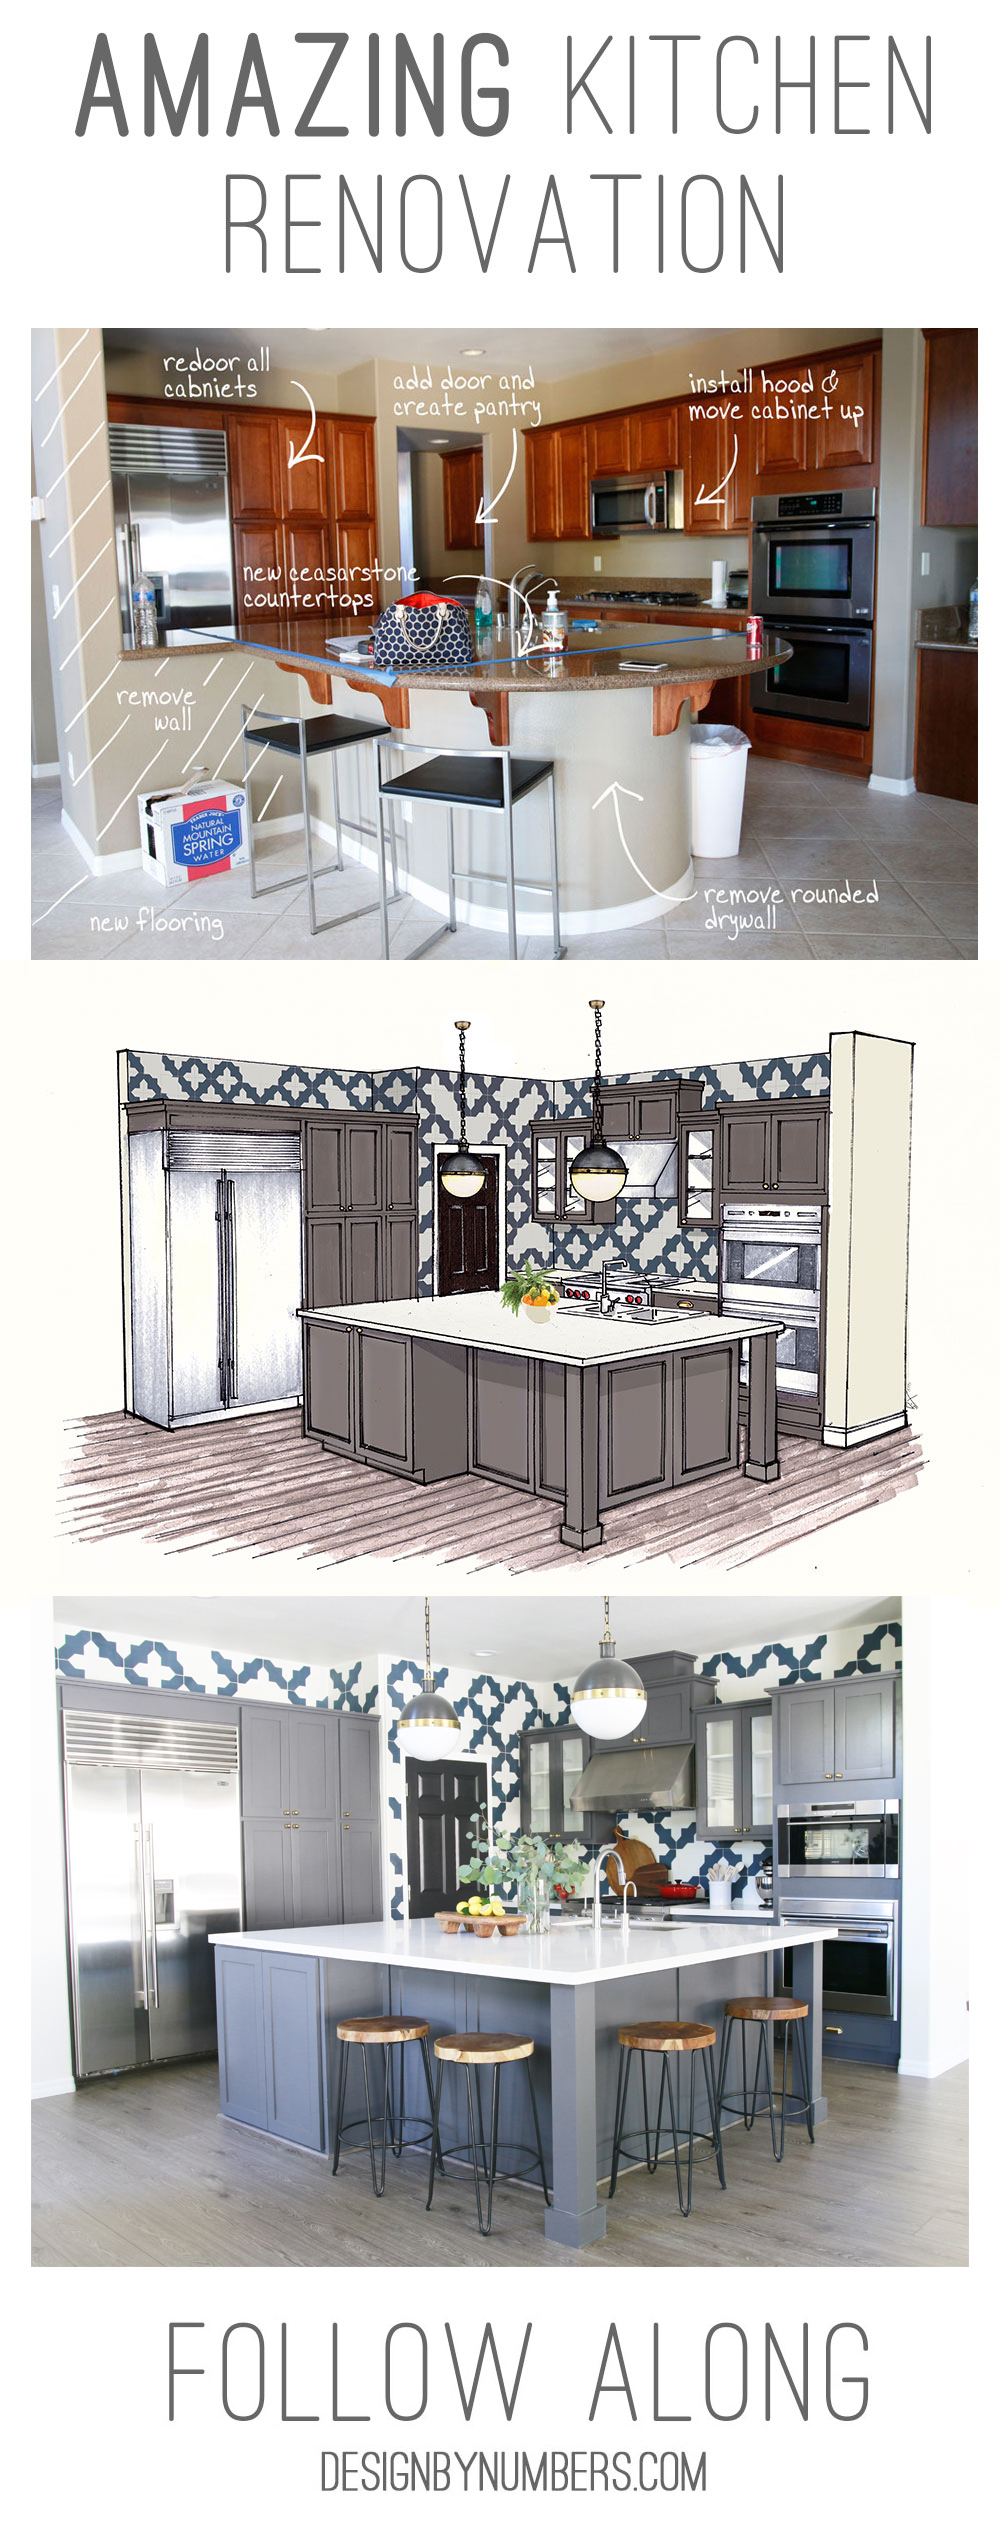 KitchenRenoDesignbyNumbersPinterest